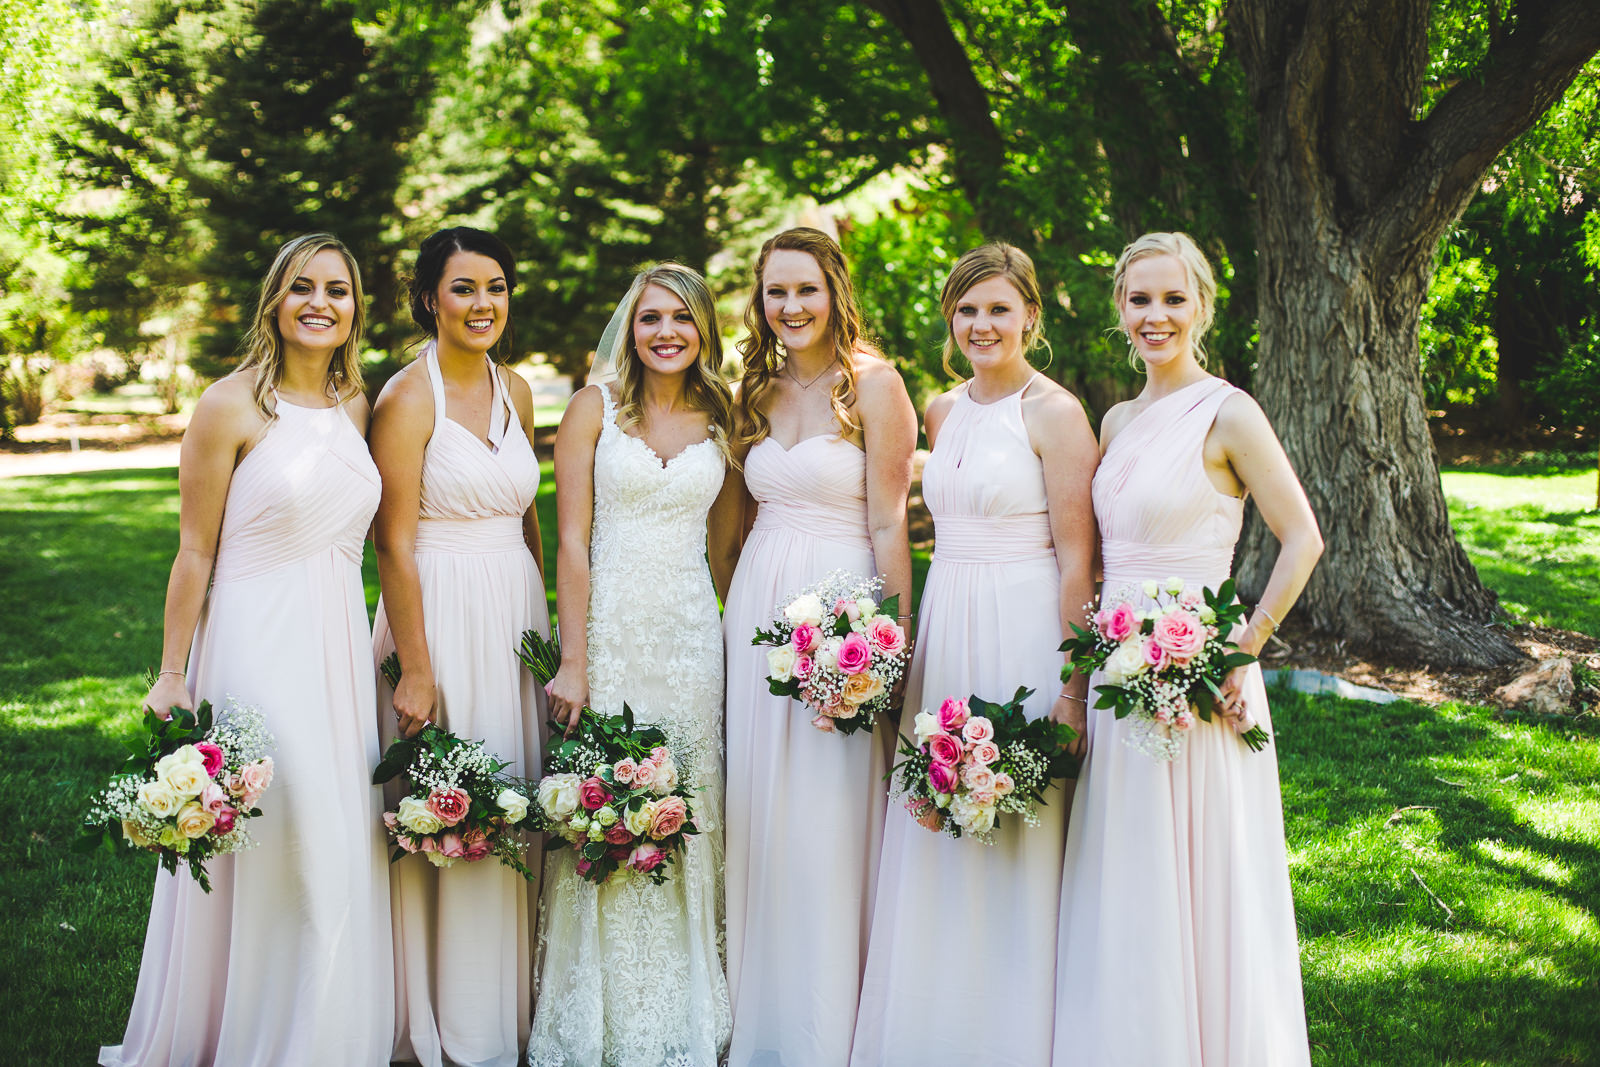 Bridal party in a group photo standing among trees